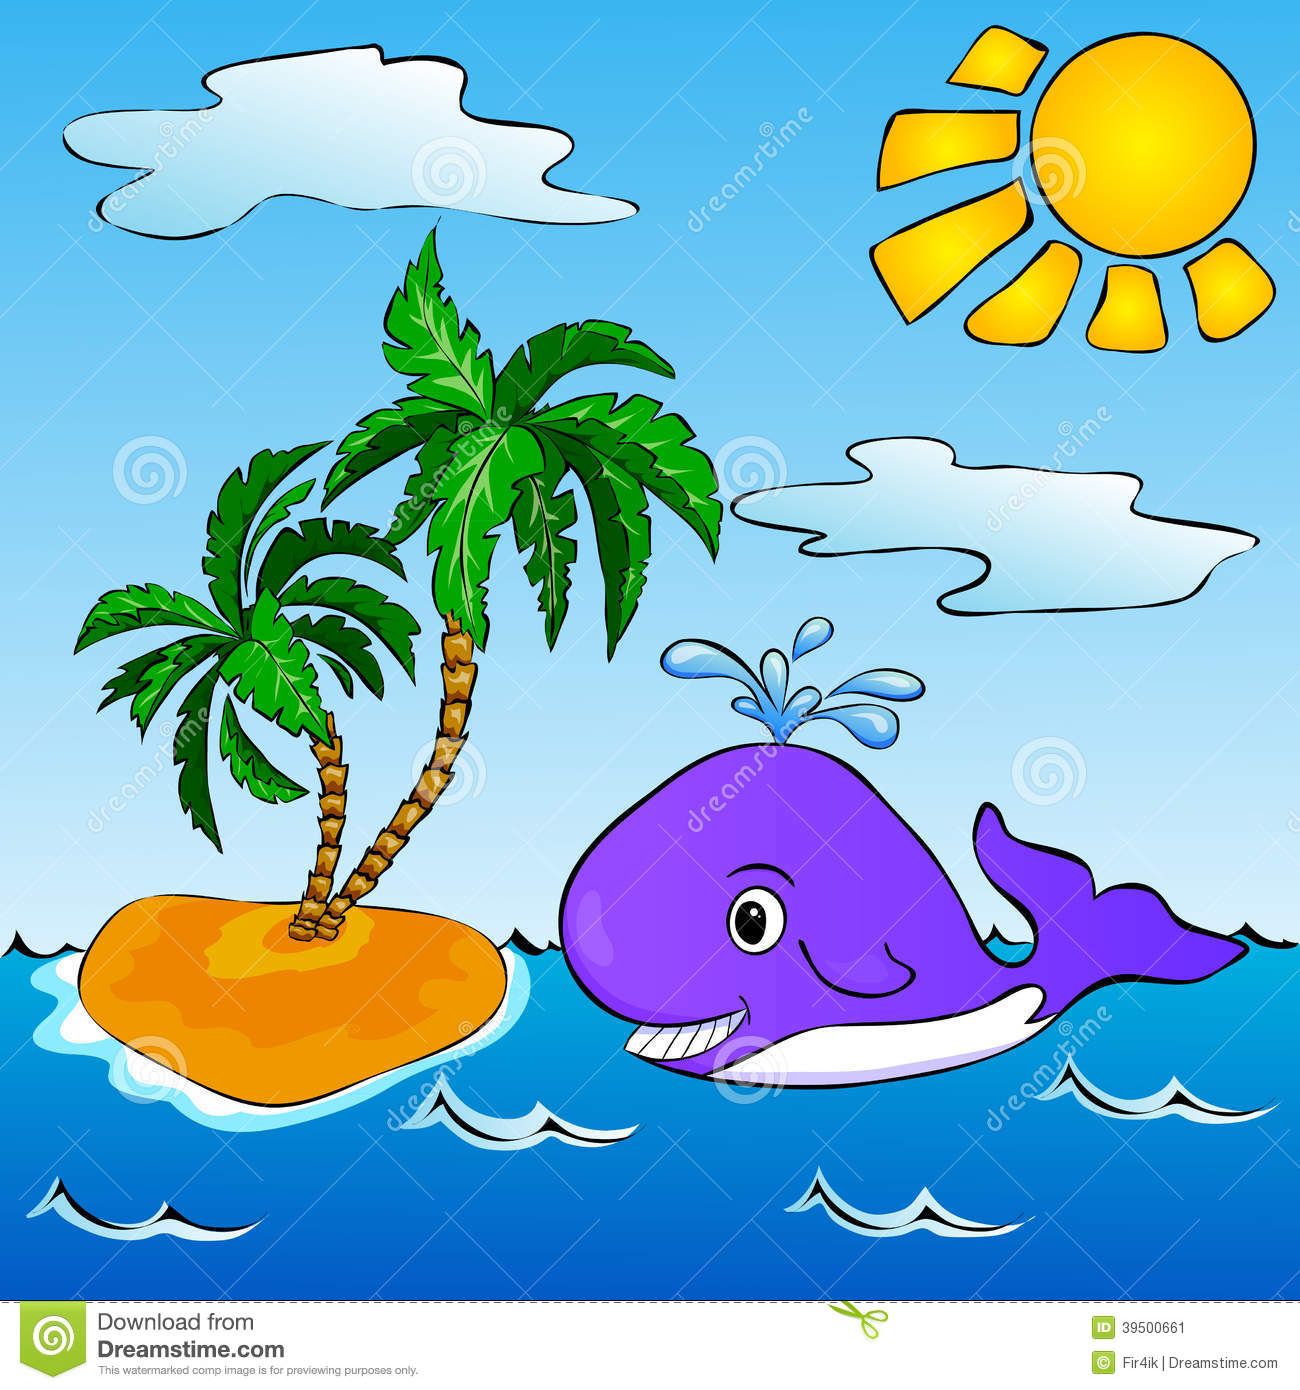 Whale near the tropical island with palms